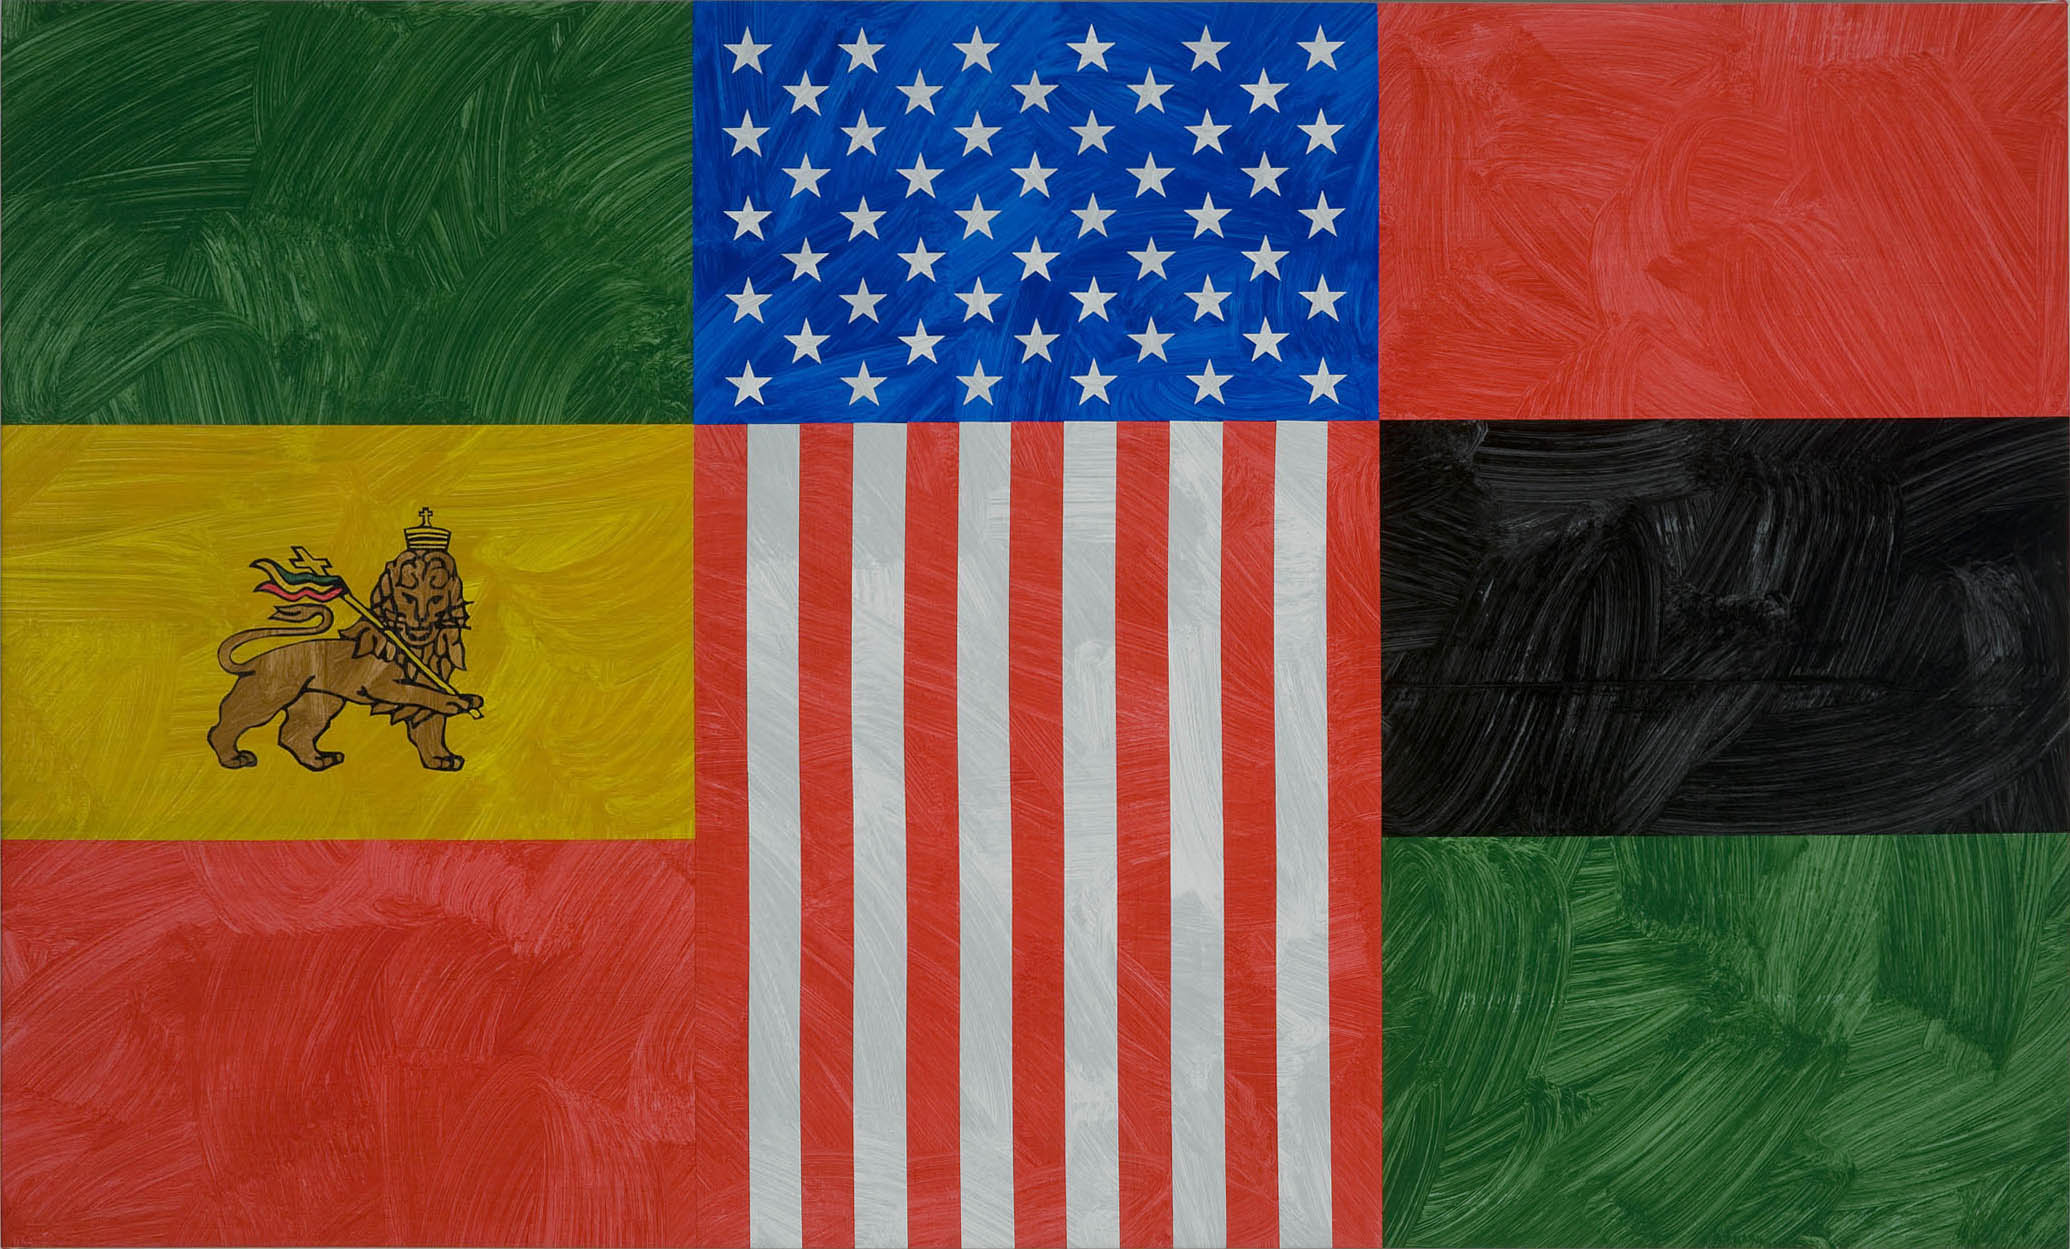 Louis Cameron | African-American Unity Flag (after Vincent W Paramore), 2009